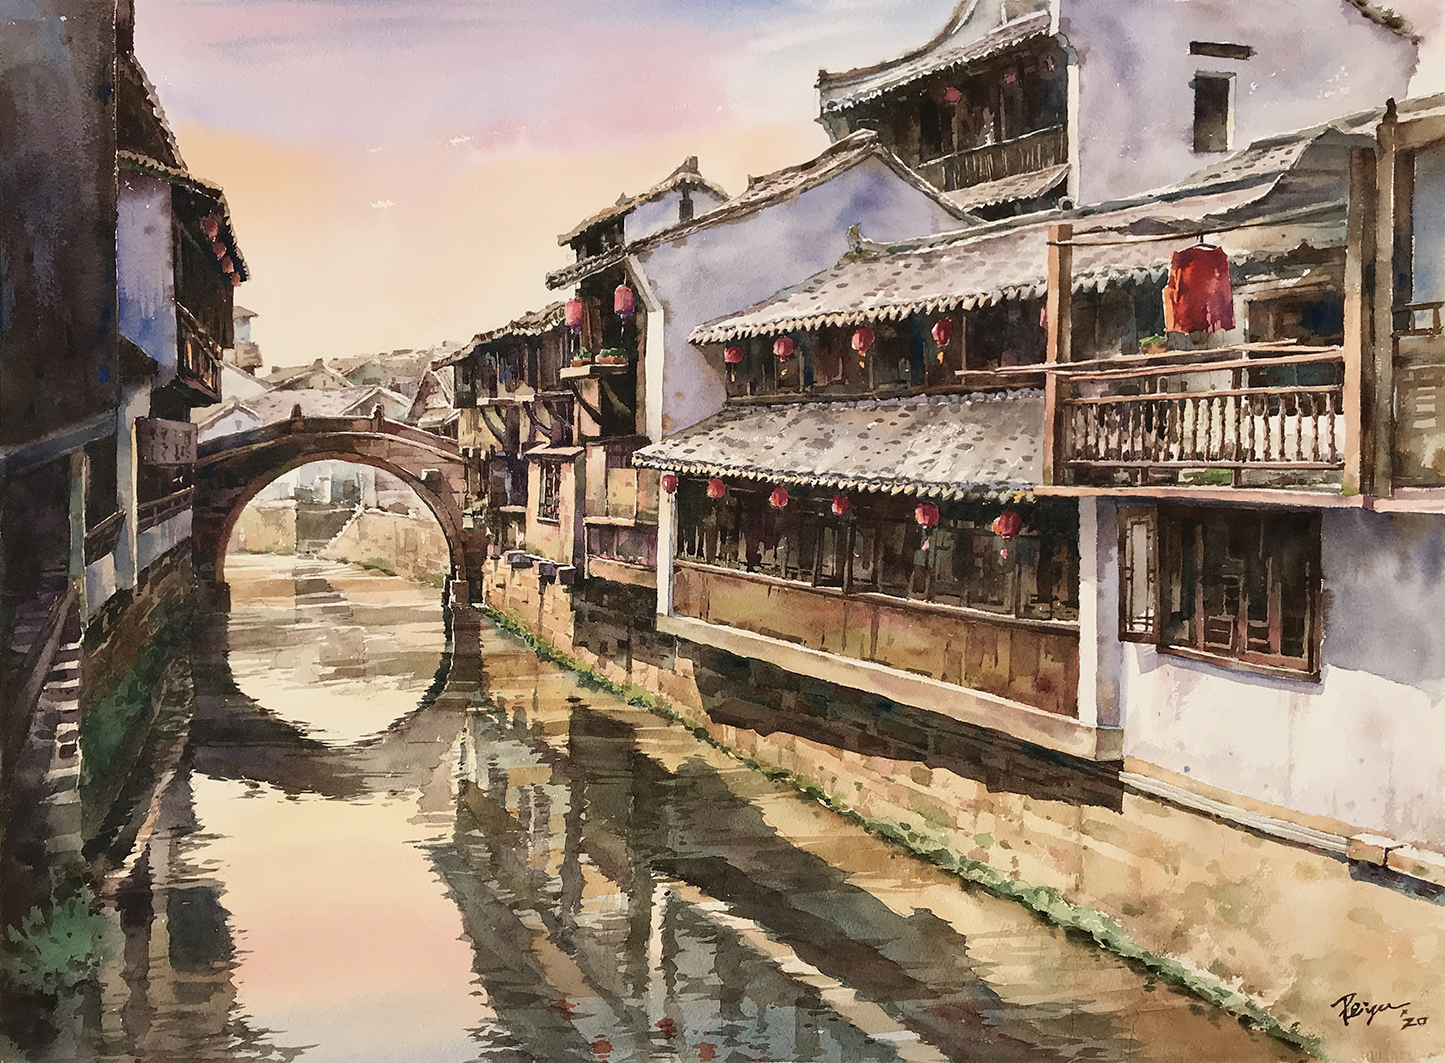 20200501-20200512 Going with the Flow—Life on the Water in Watercolors by Tseng Pei-yu